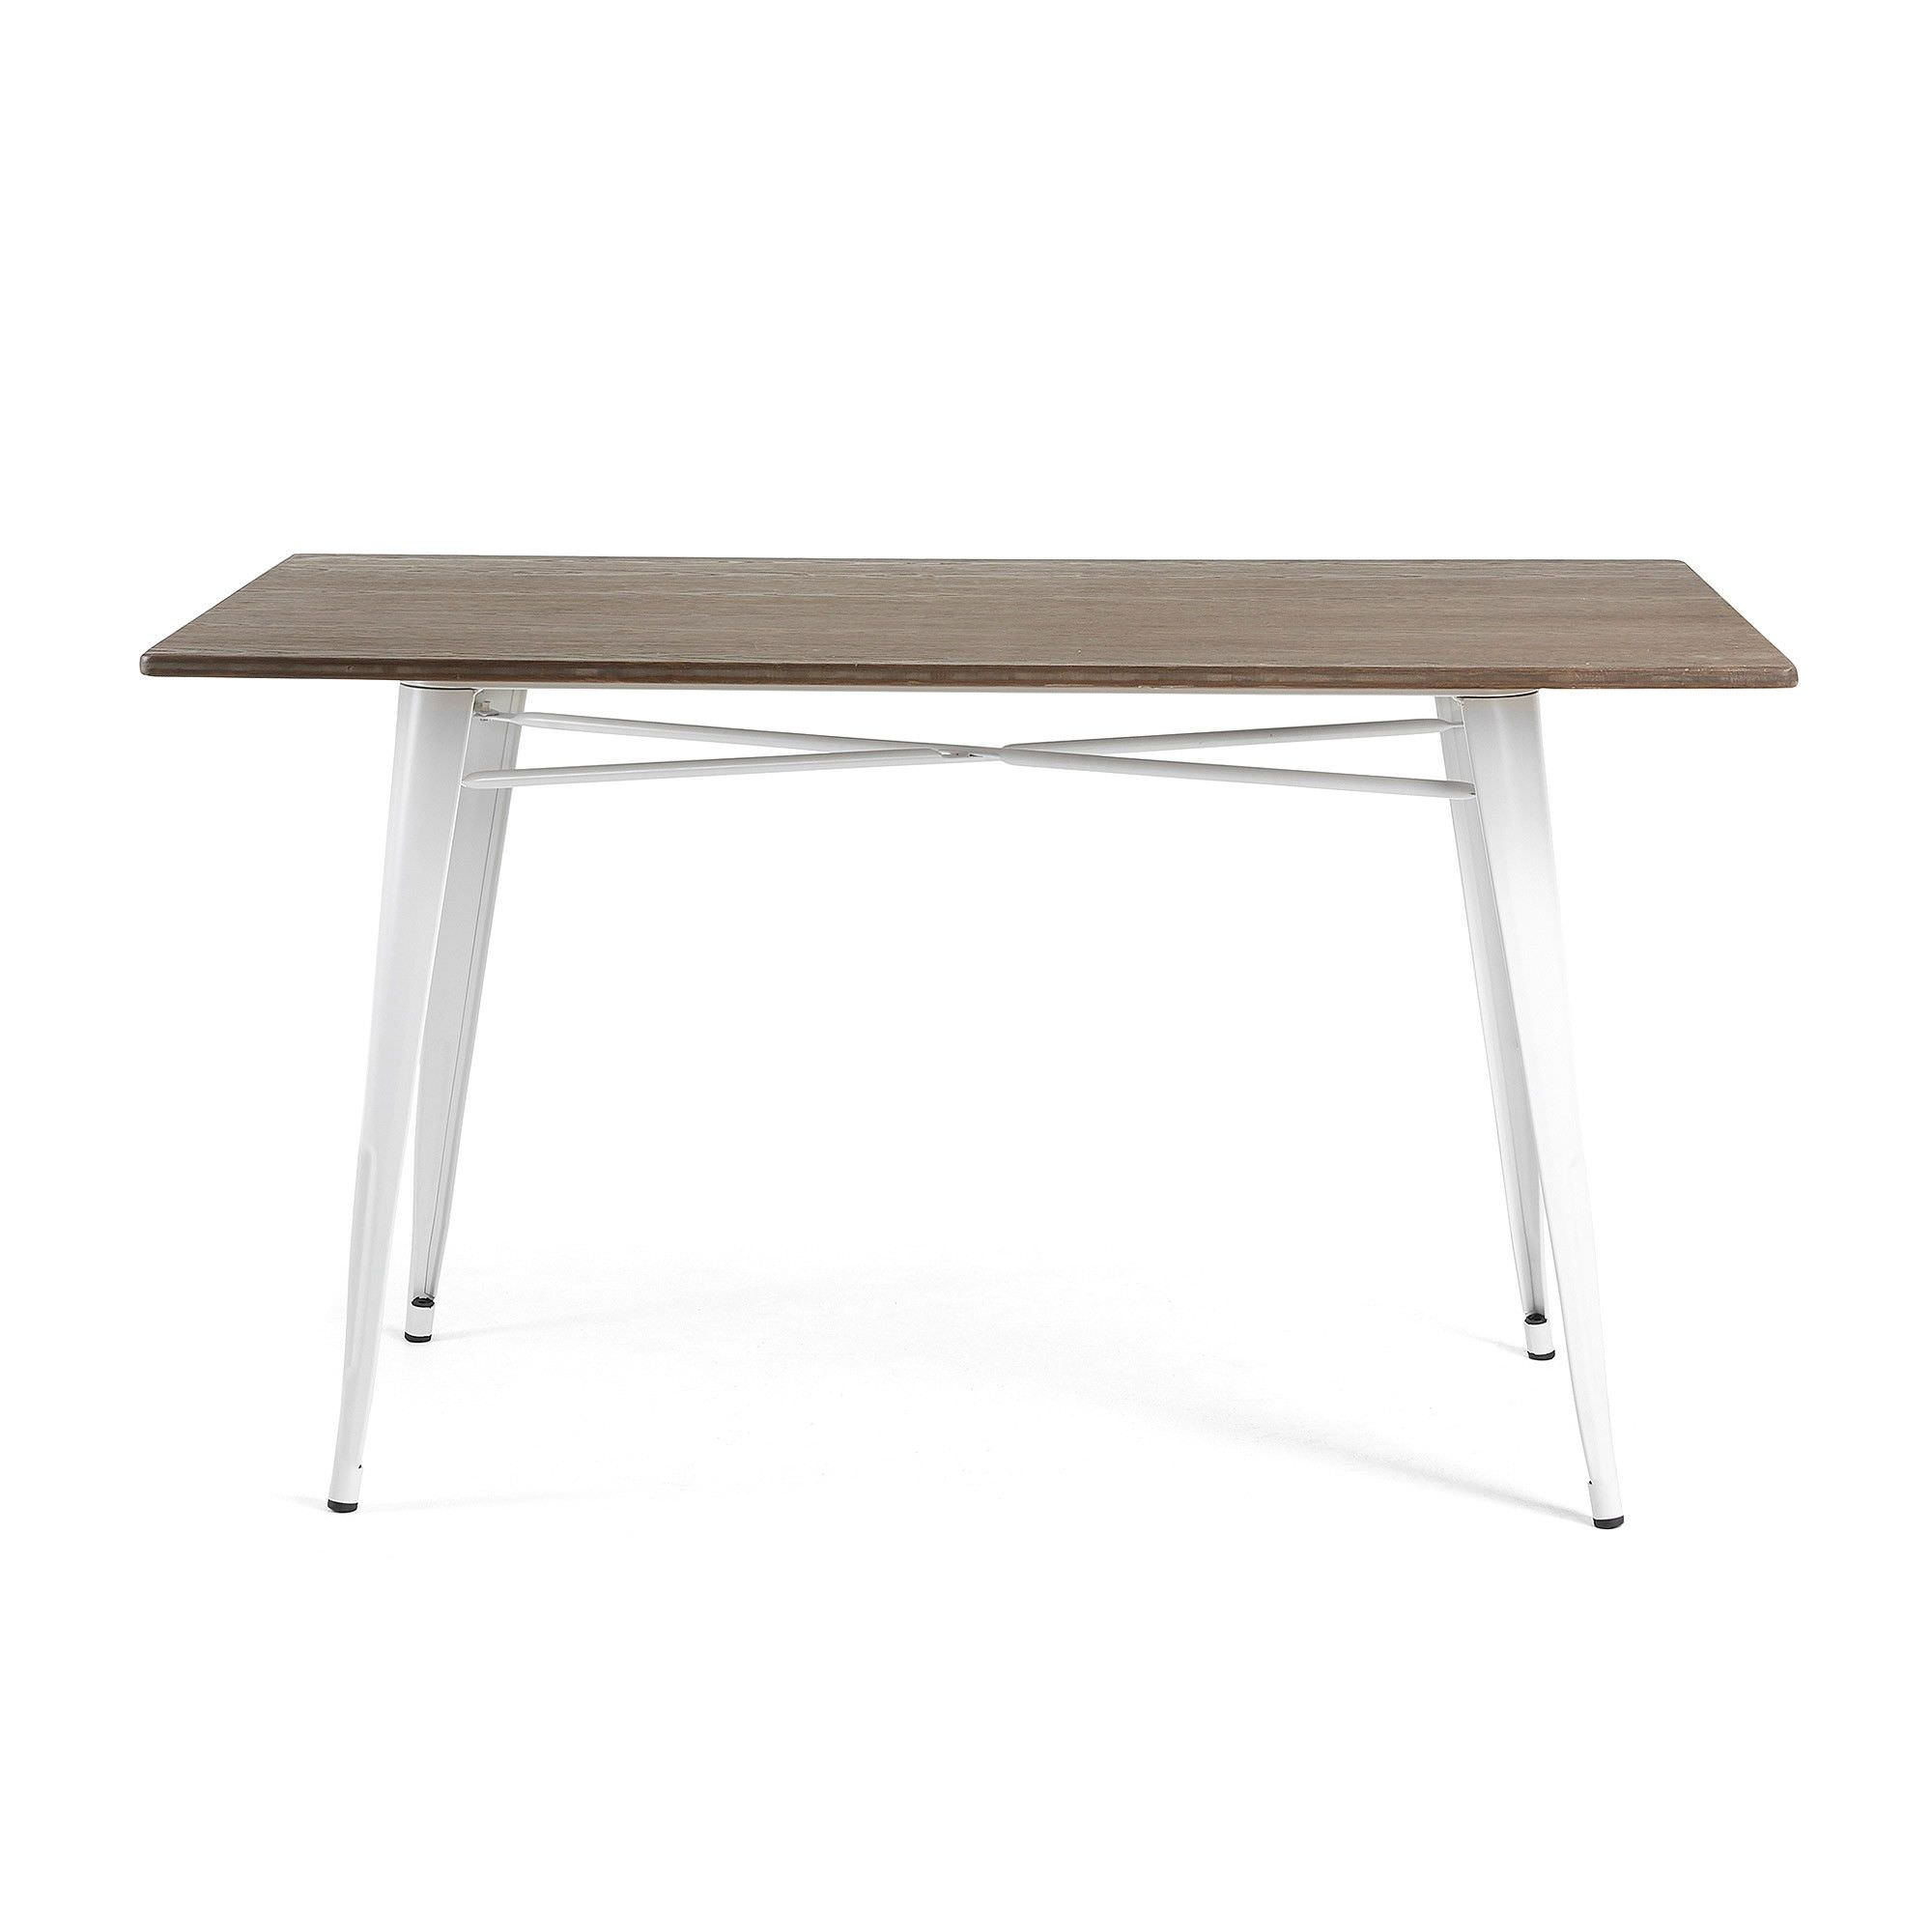 Frazier Steel Indoor/Outdoor Dining Table with Bamboo Top, 150cm, White